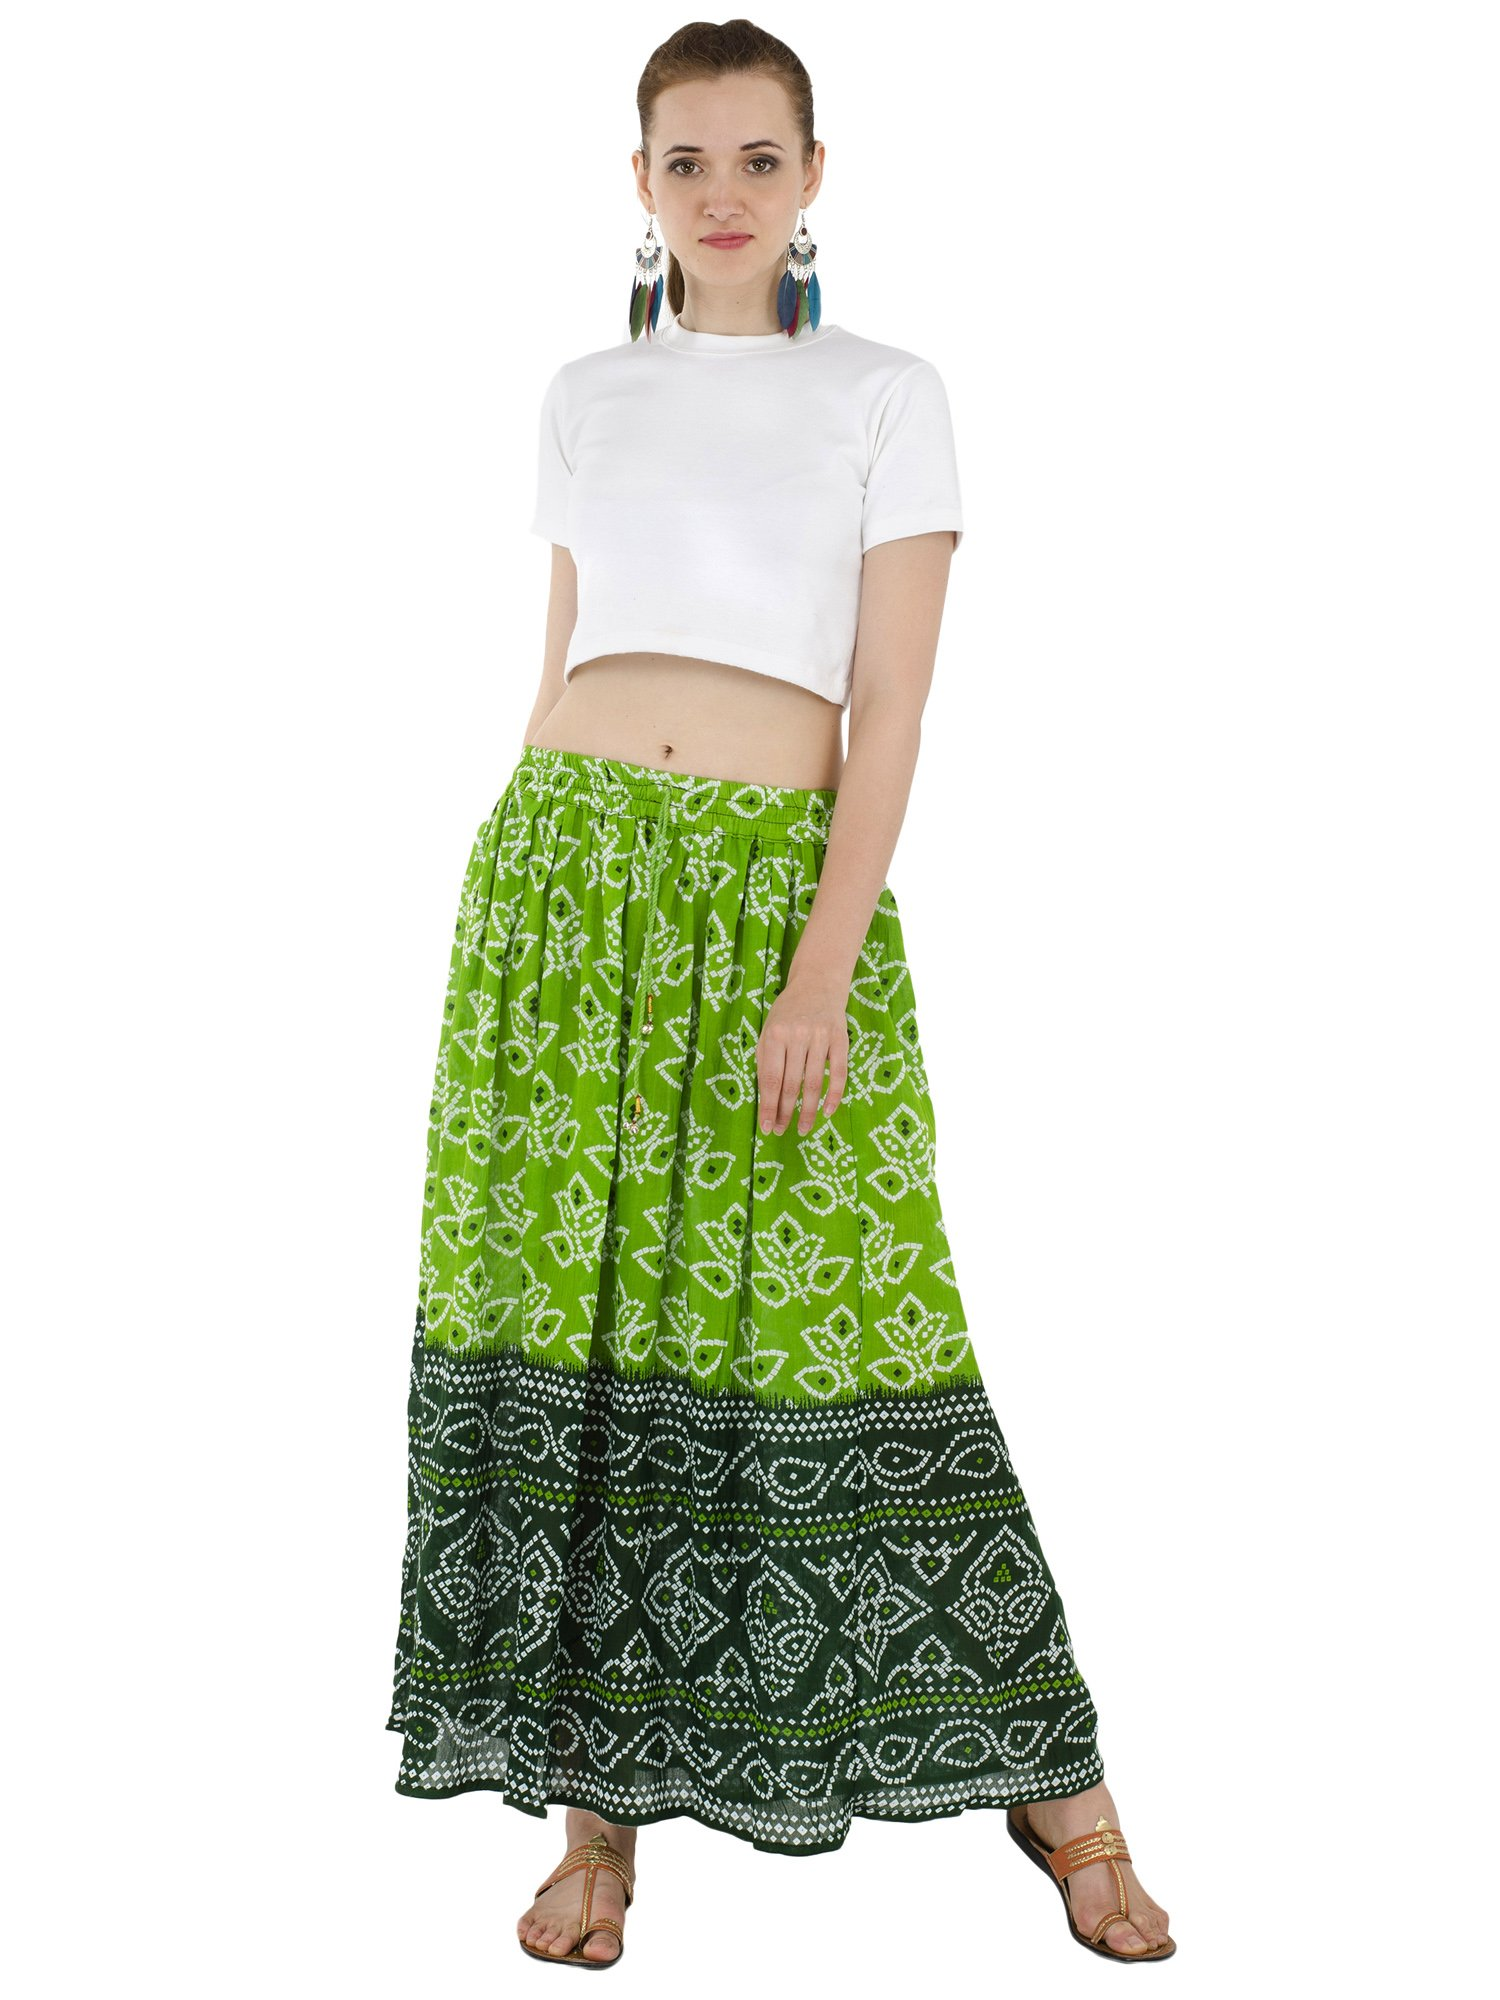 Women's Floral Maxi Skirts High Waisted Floral Print Cocktail Party Prom Skirt